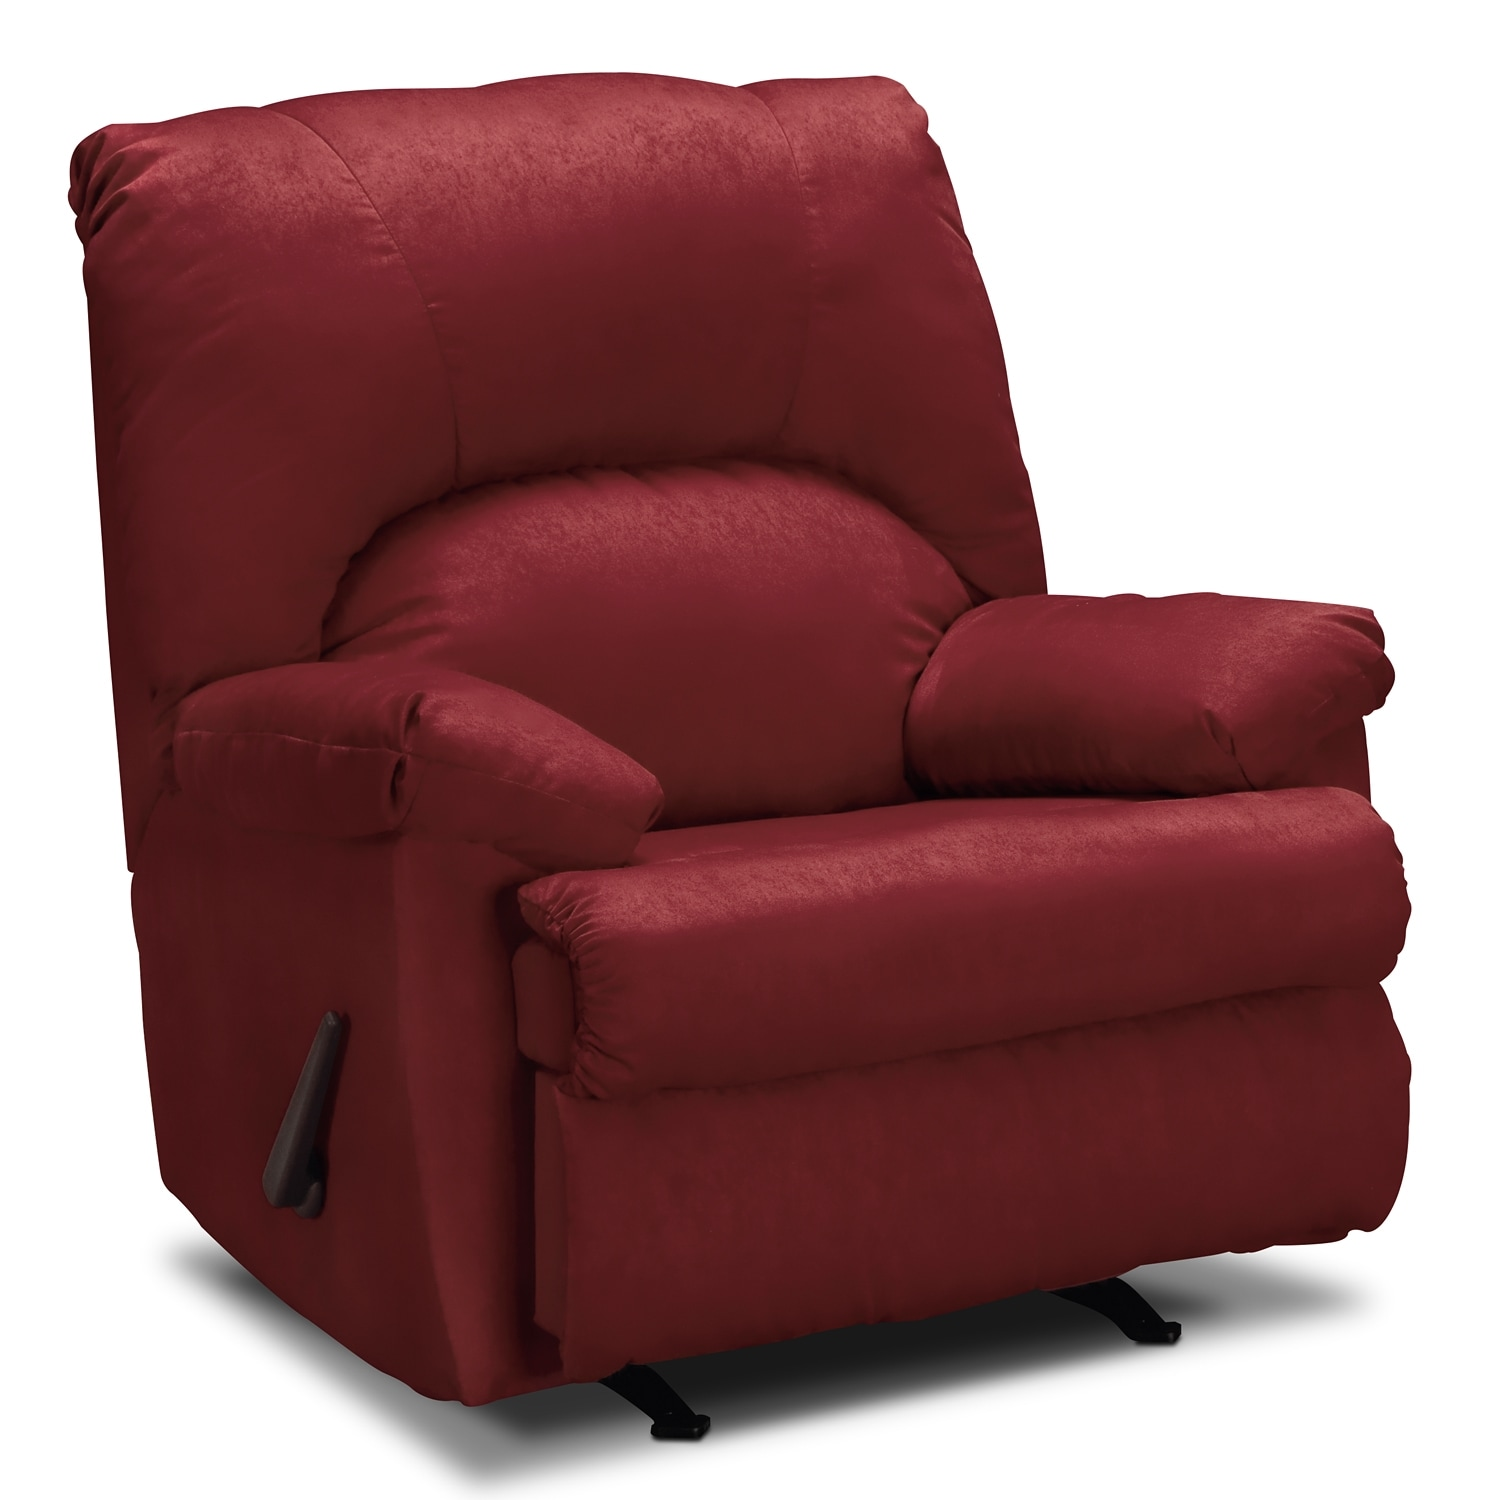 Quincy Rocker Recliner Garnet Value City Furniture And